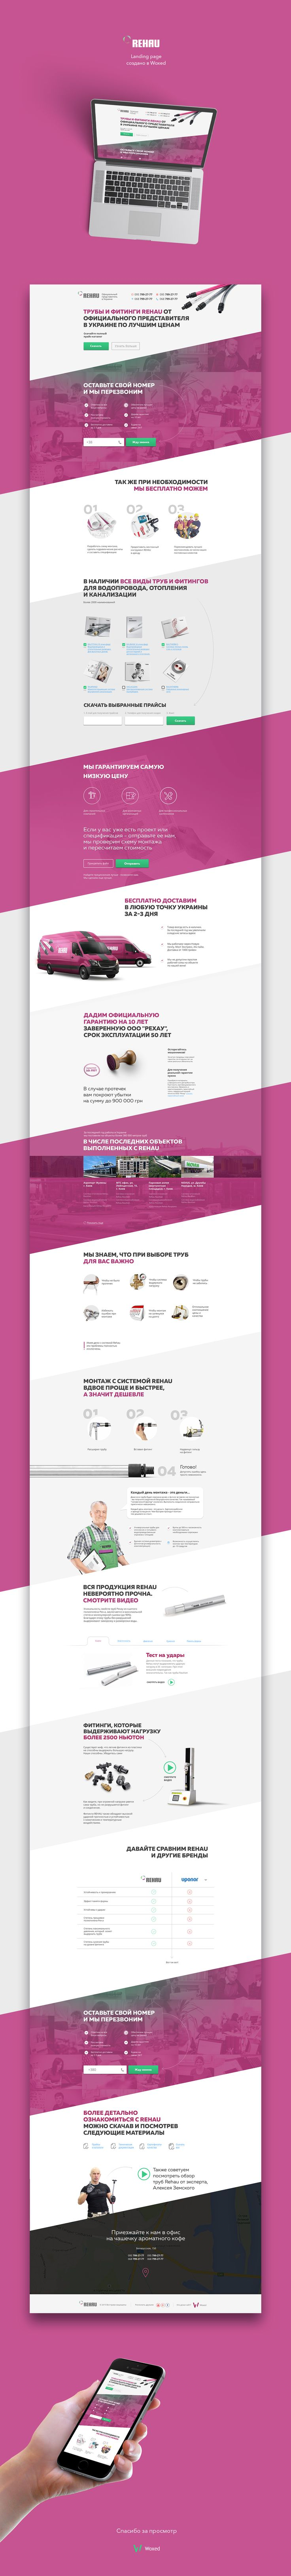 Landing page 4 REHAU on Behance